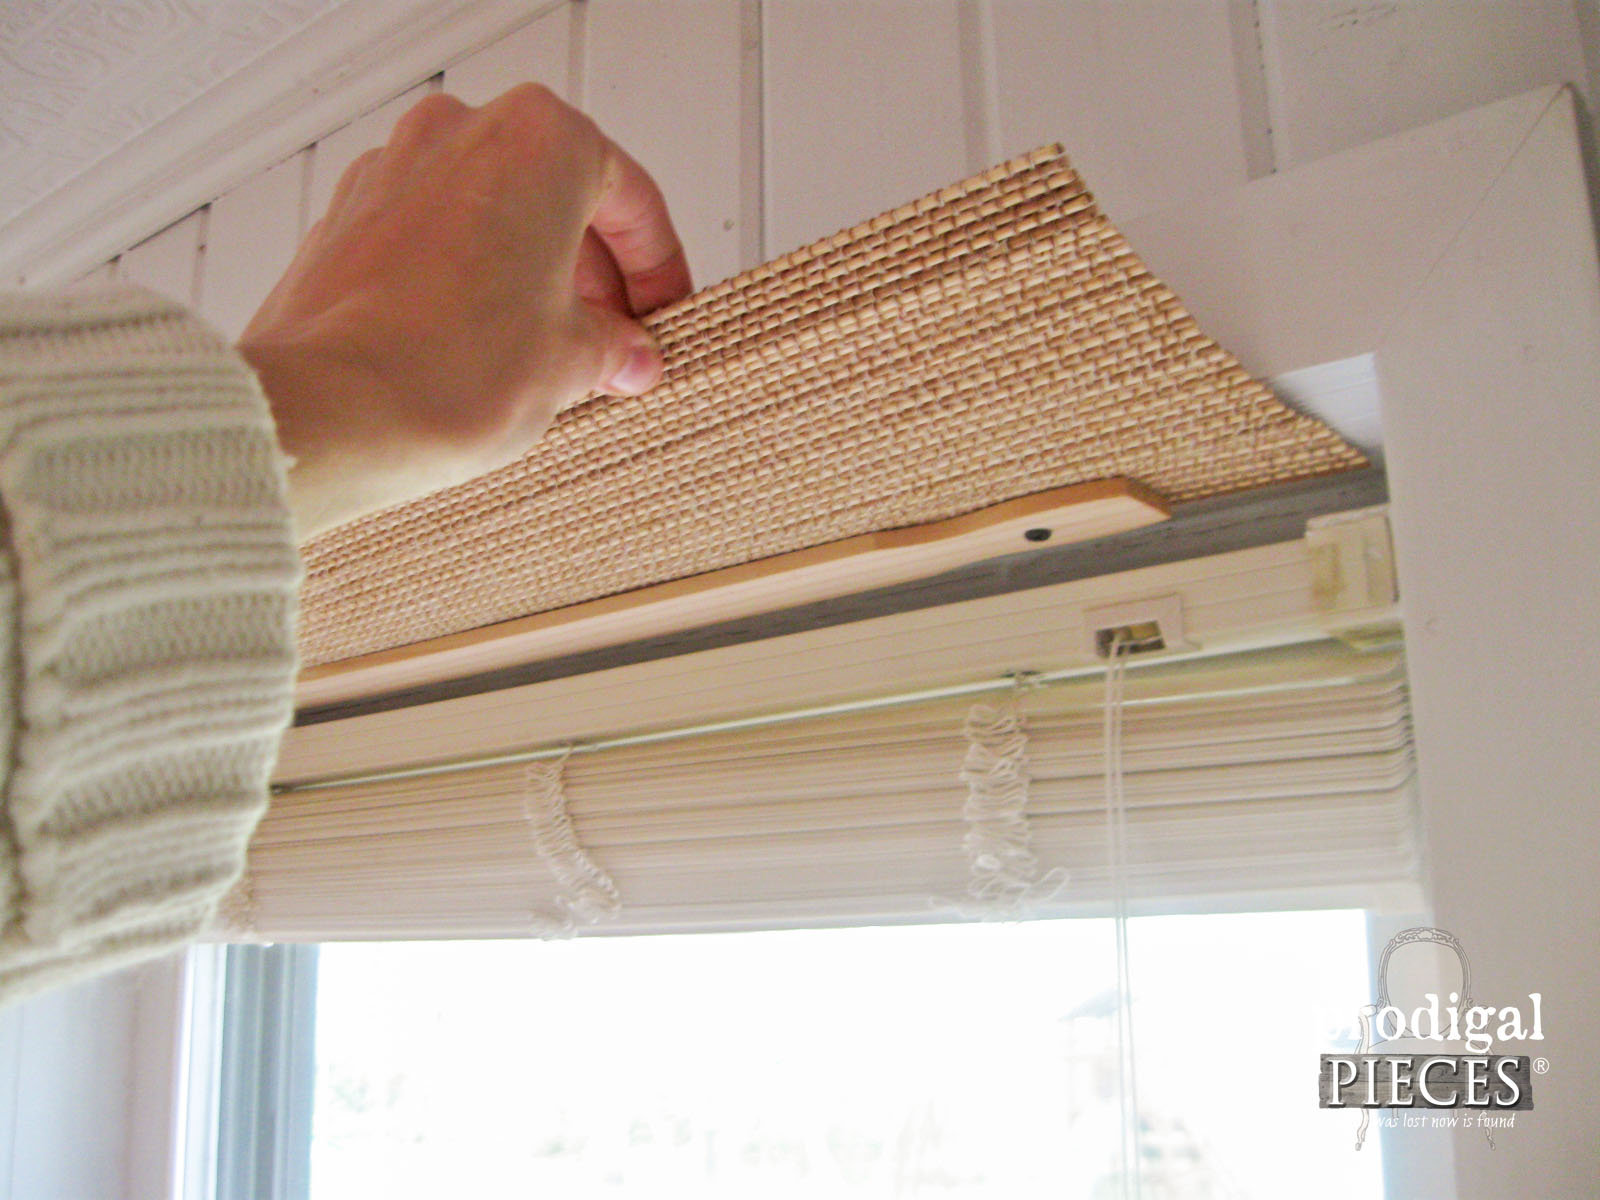 Attaching Faux Bamboo Window Treatment | Prodigal Pieces |www.prodigalpieces.com